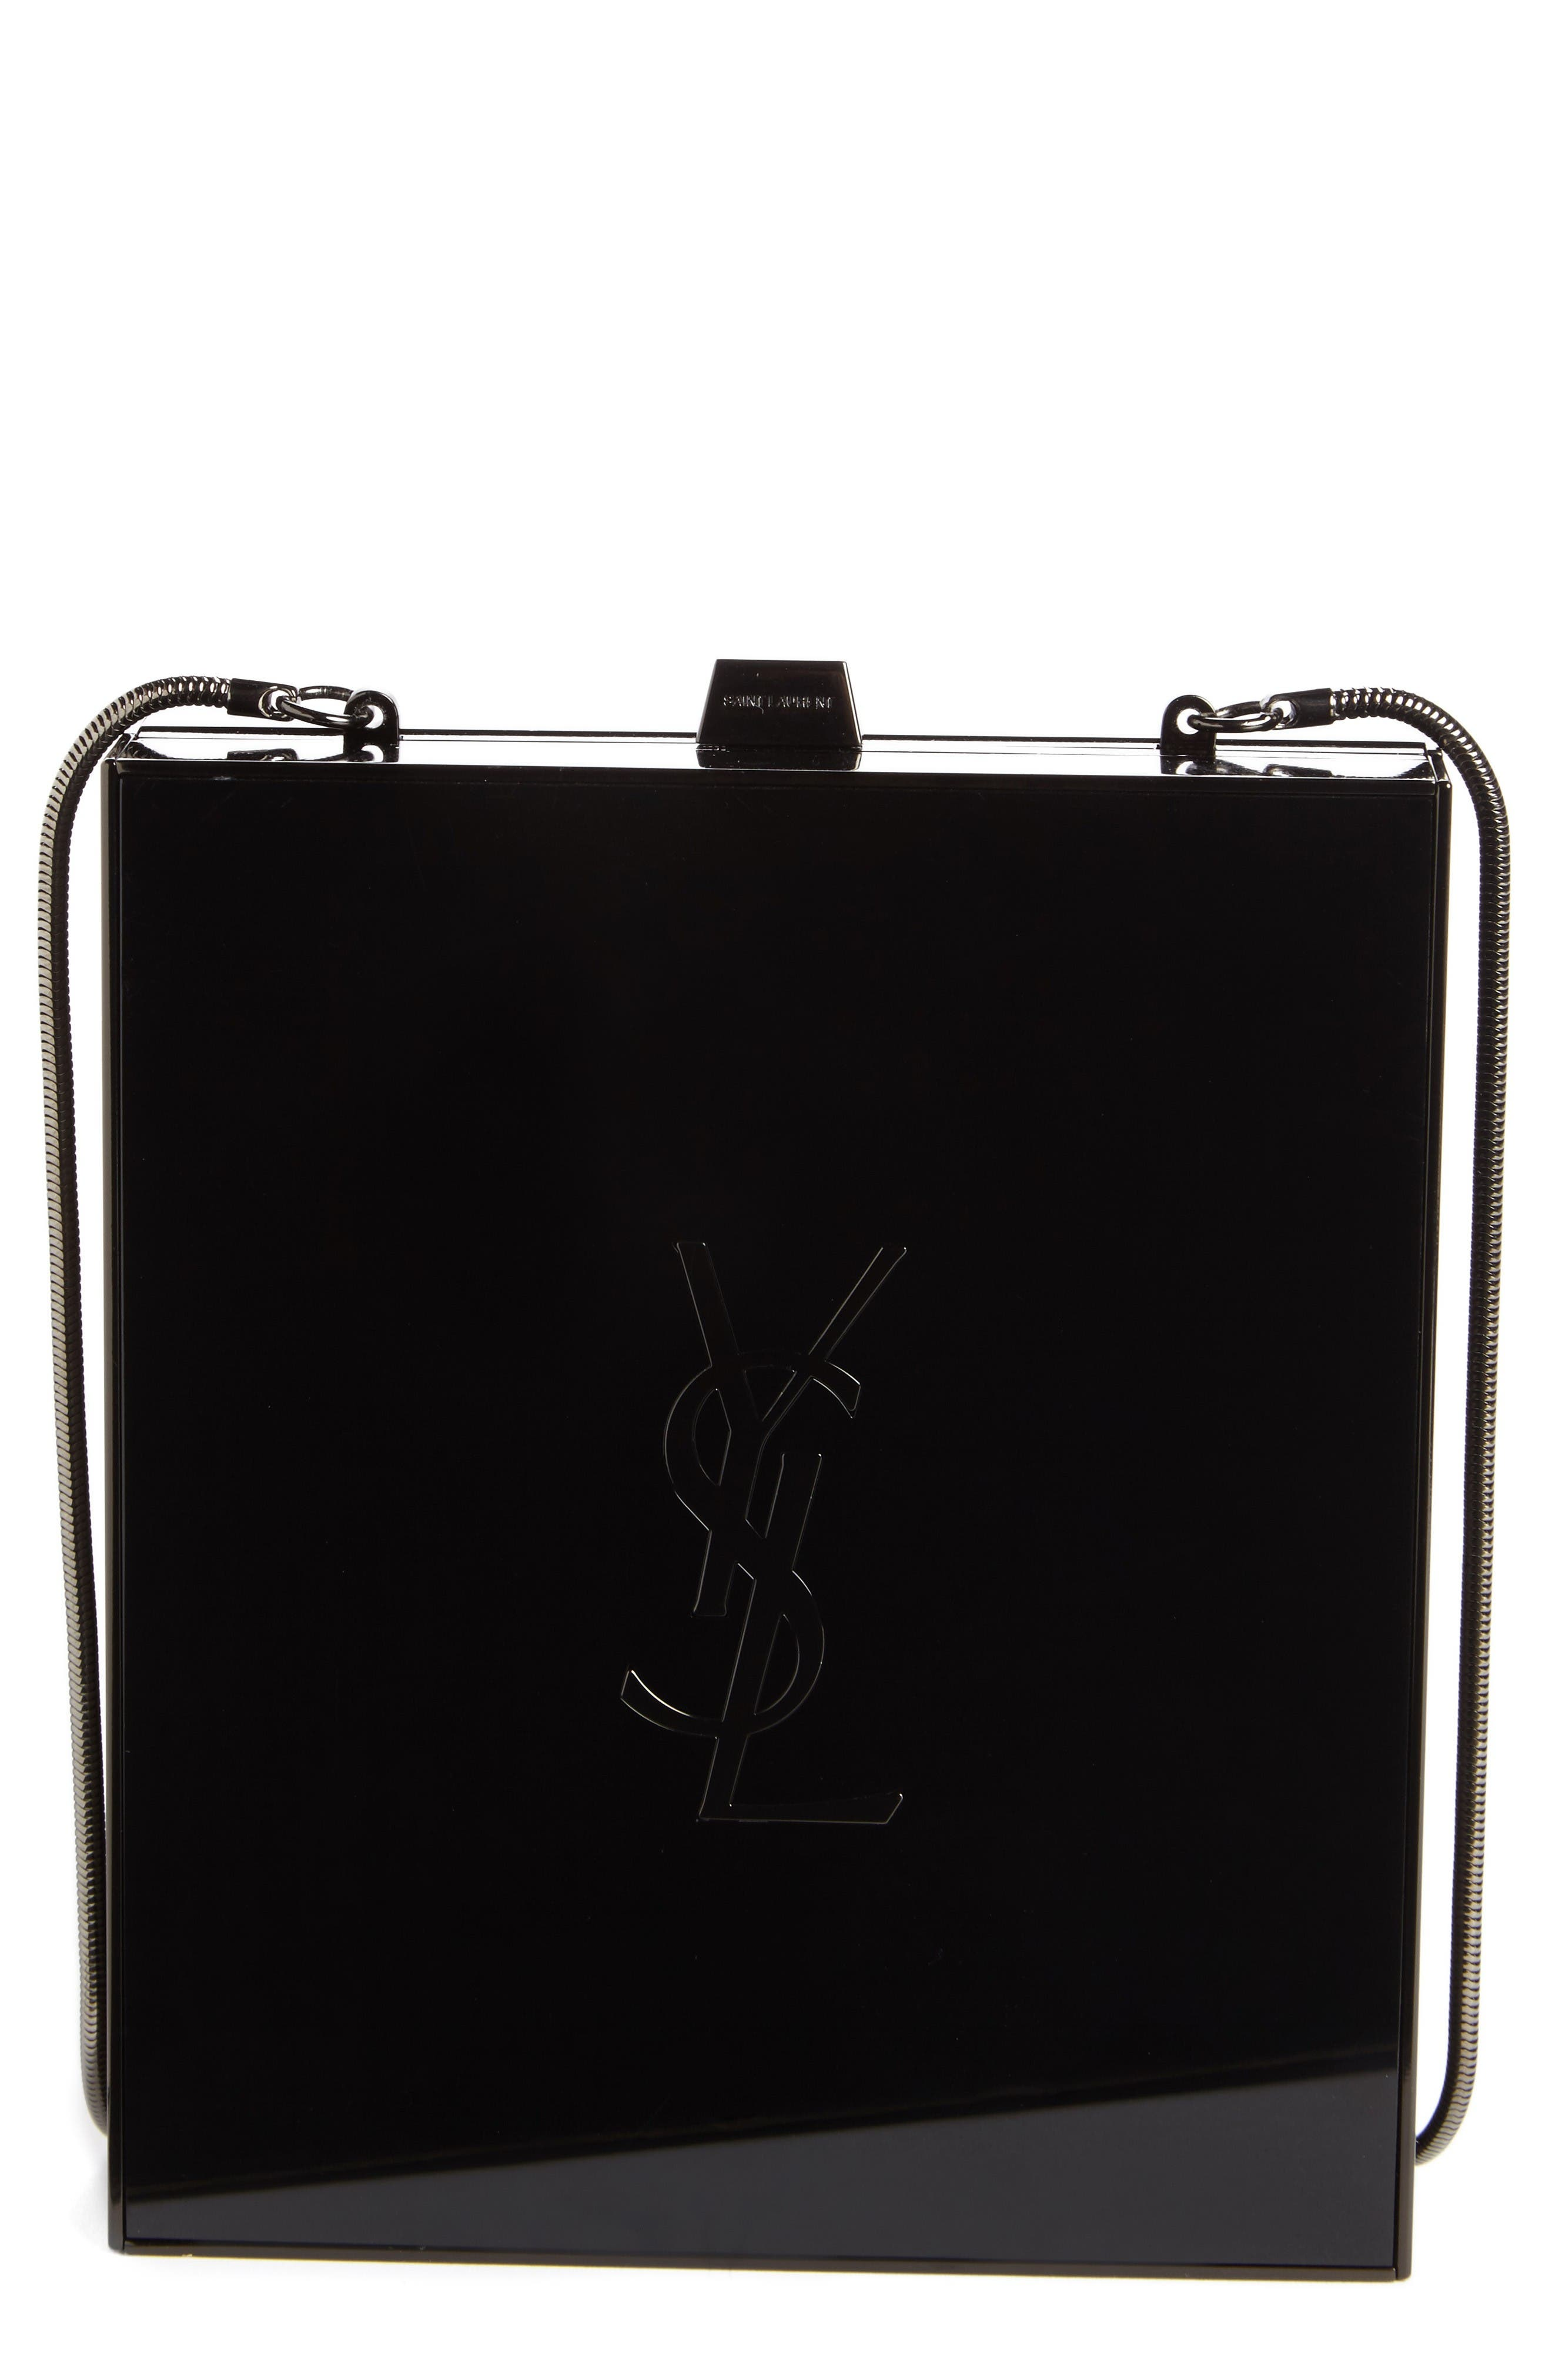 Main Image - Saint Laurent Tuxedo Plexiglass Clutch